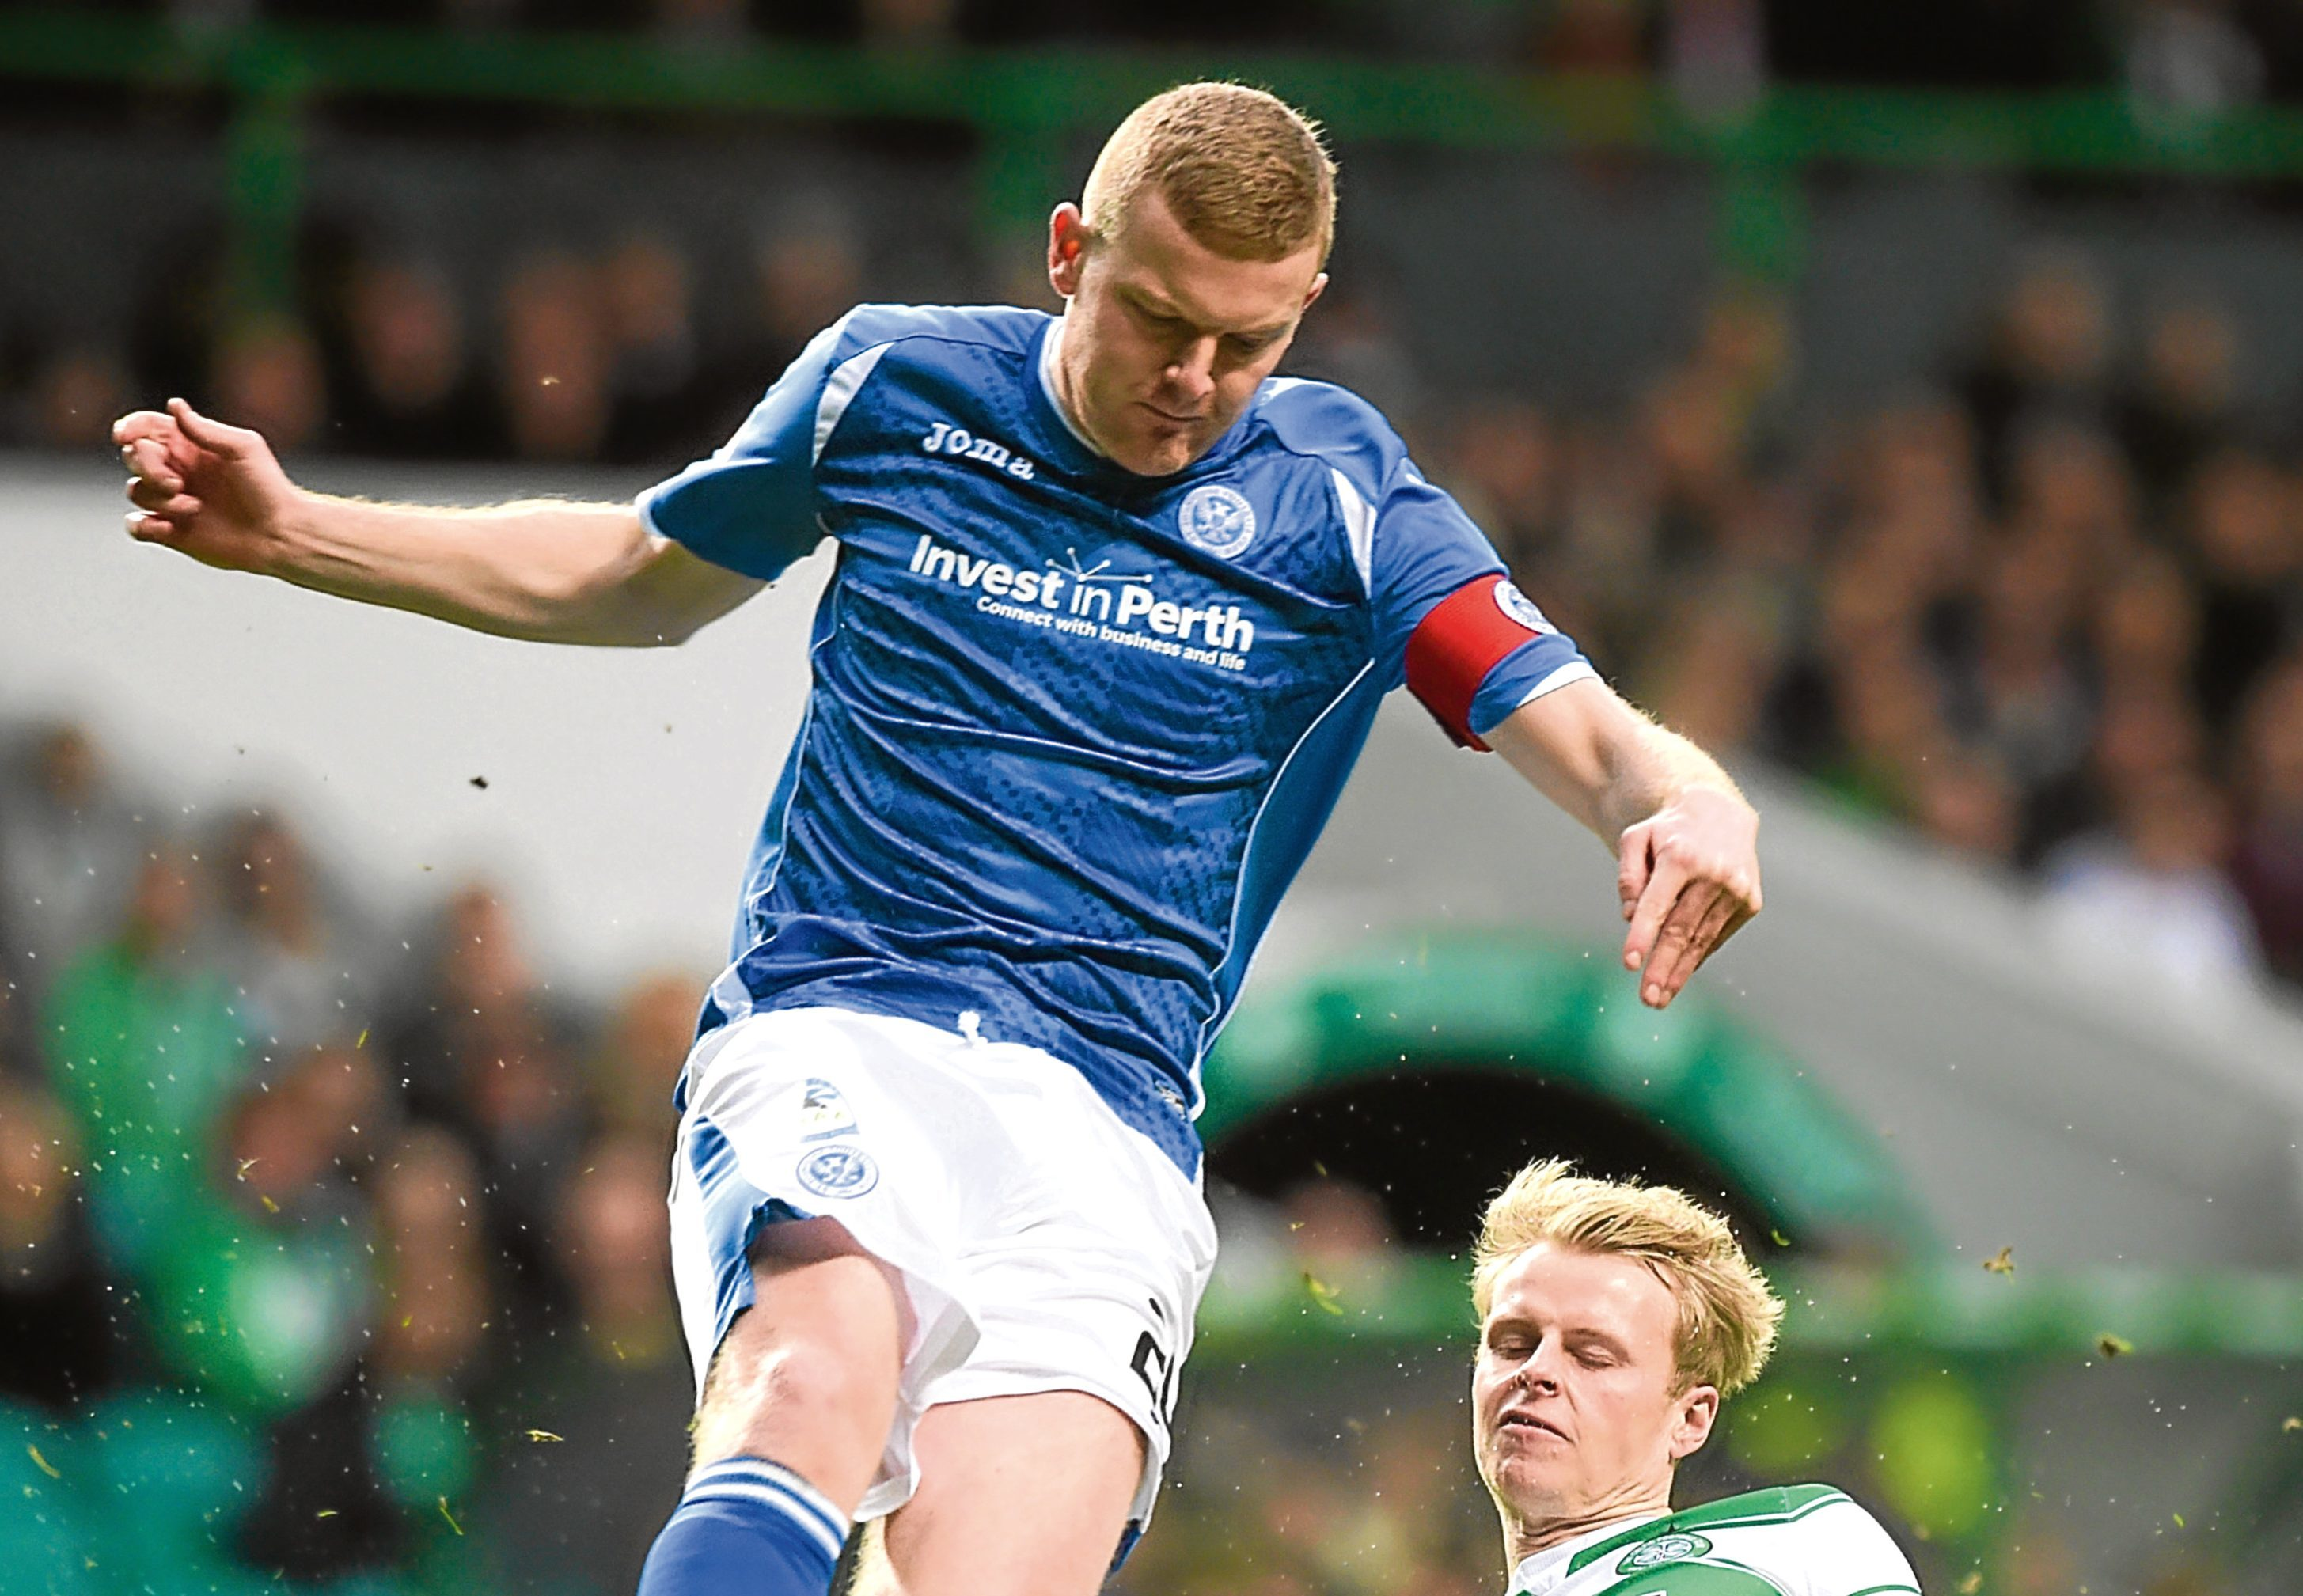 Brian Easton will be stand-in skipper against Celtic if Chris Millar's injury keeps him out of action.